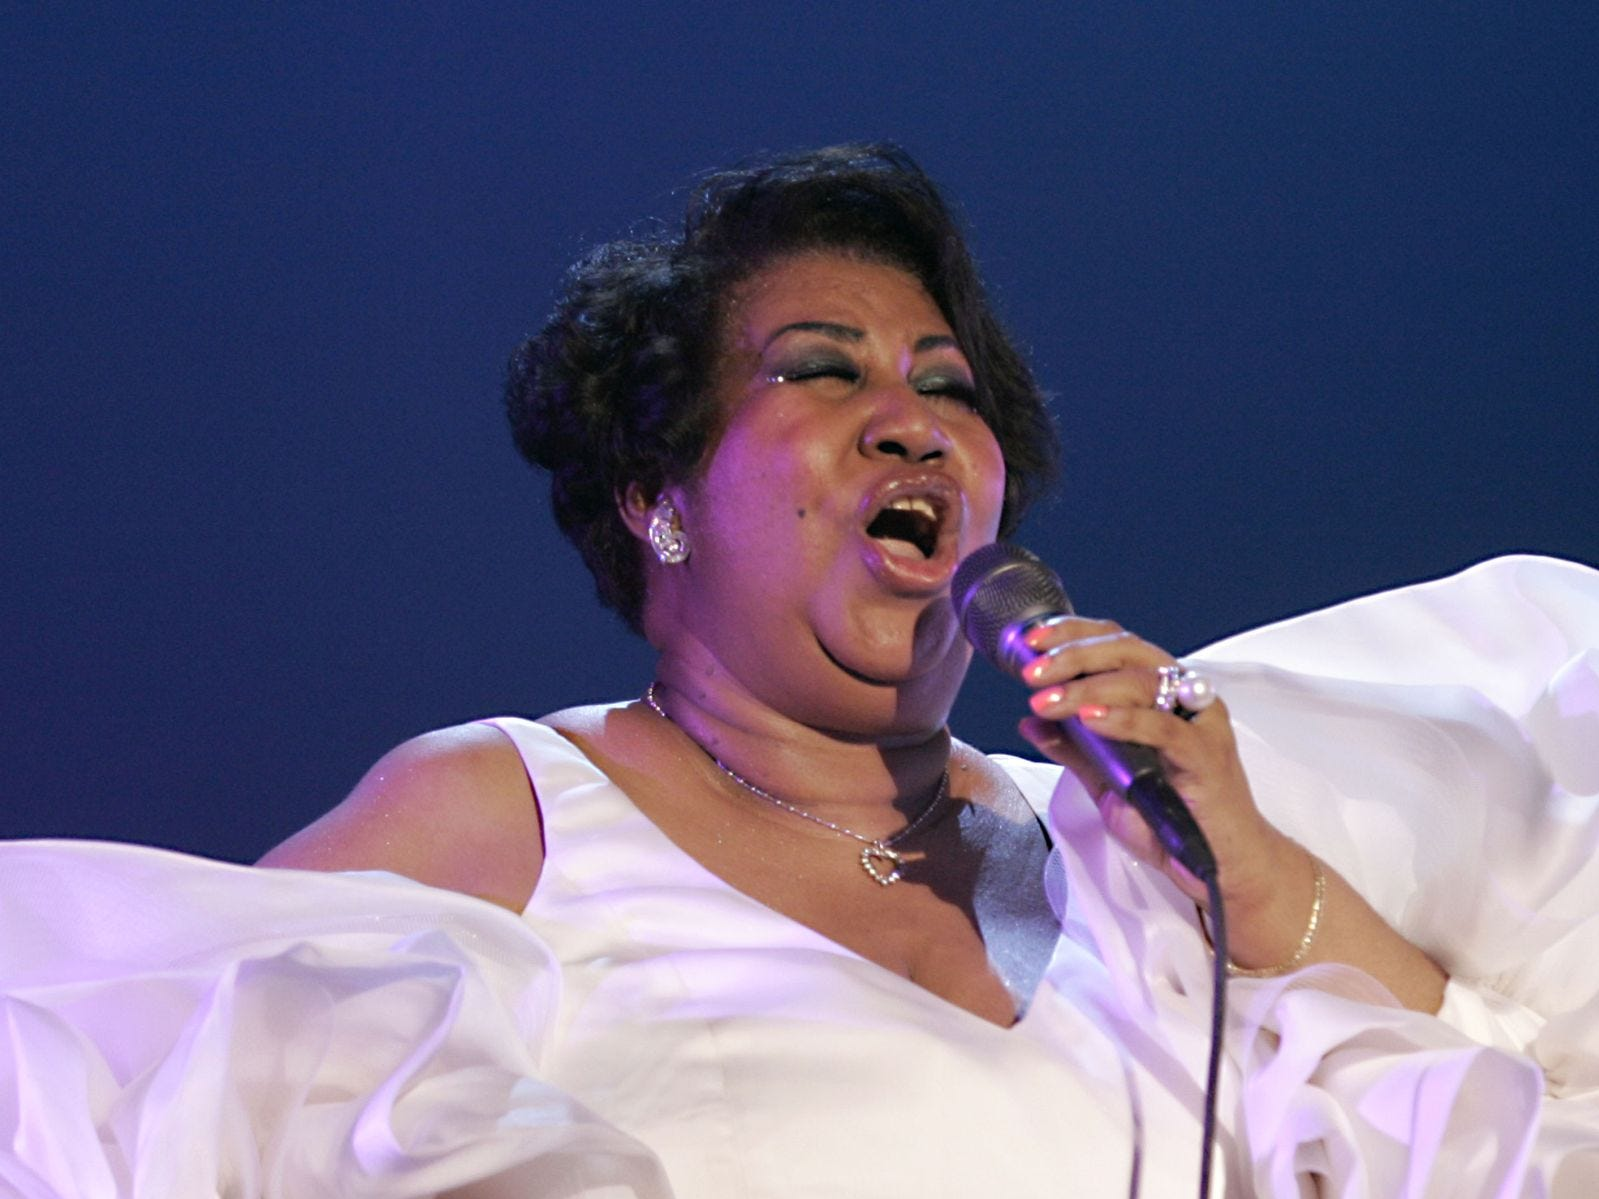 Aretha Franklin is shown in concert at The Greek Theatre on Sept. 17, 2004, in Los Angeles, Calif.